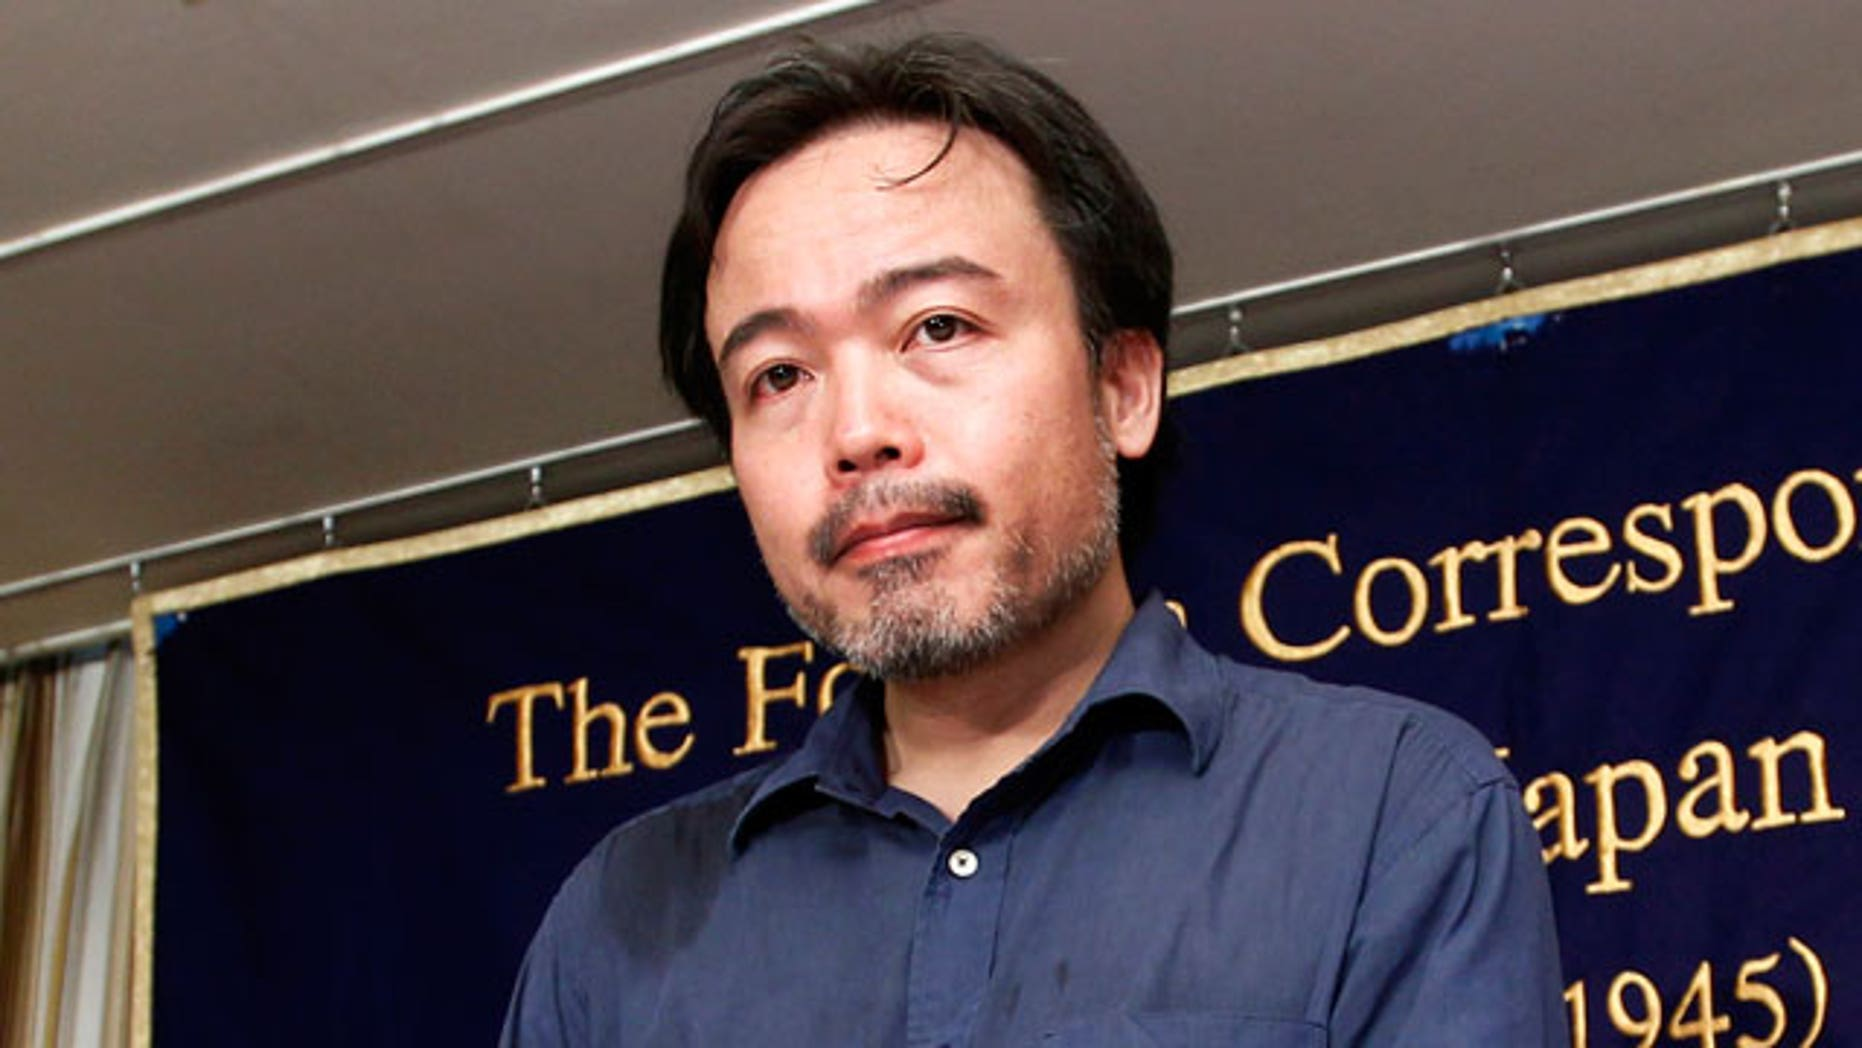 Freed Japanese freelance journalist Kosuke Tsuneoka arrives for a press conference at the Foreign Correspondents' Club of Japan in Tokyo, Tuesday, Sept. 7, 2010. Tsuneoka was kidnapped in April, when he traveled to a Taliban-controlled area in northern Afghanistan, and was released Saturday night to a Japanese Embassy.